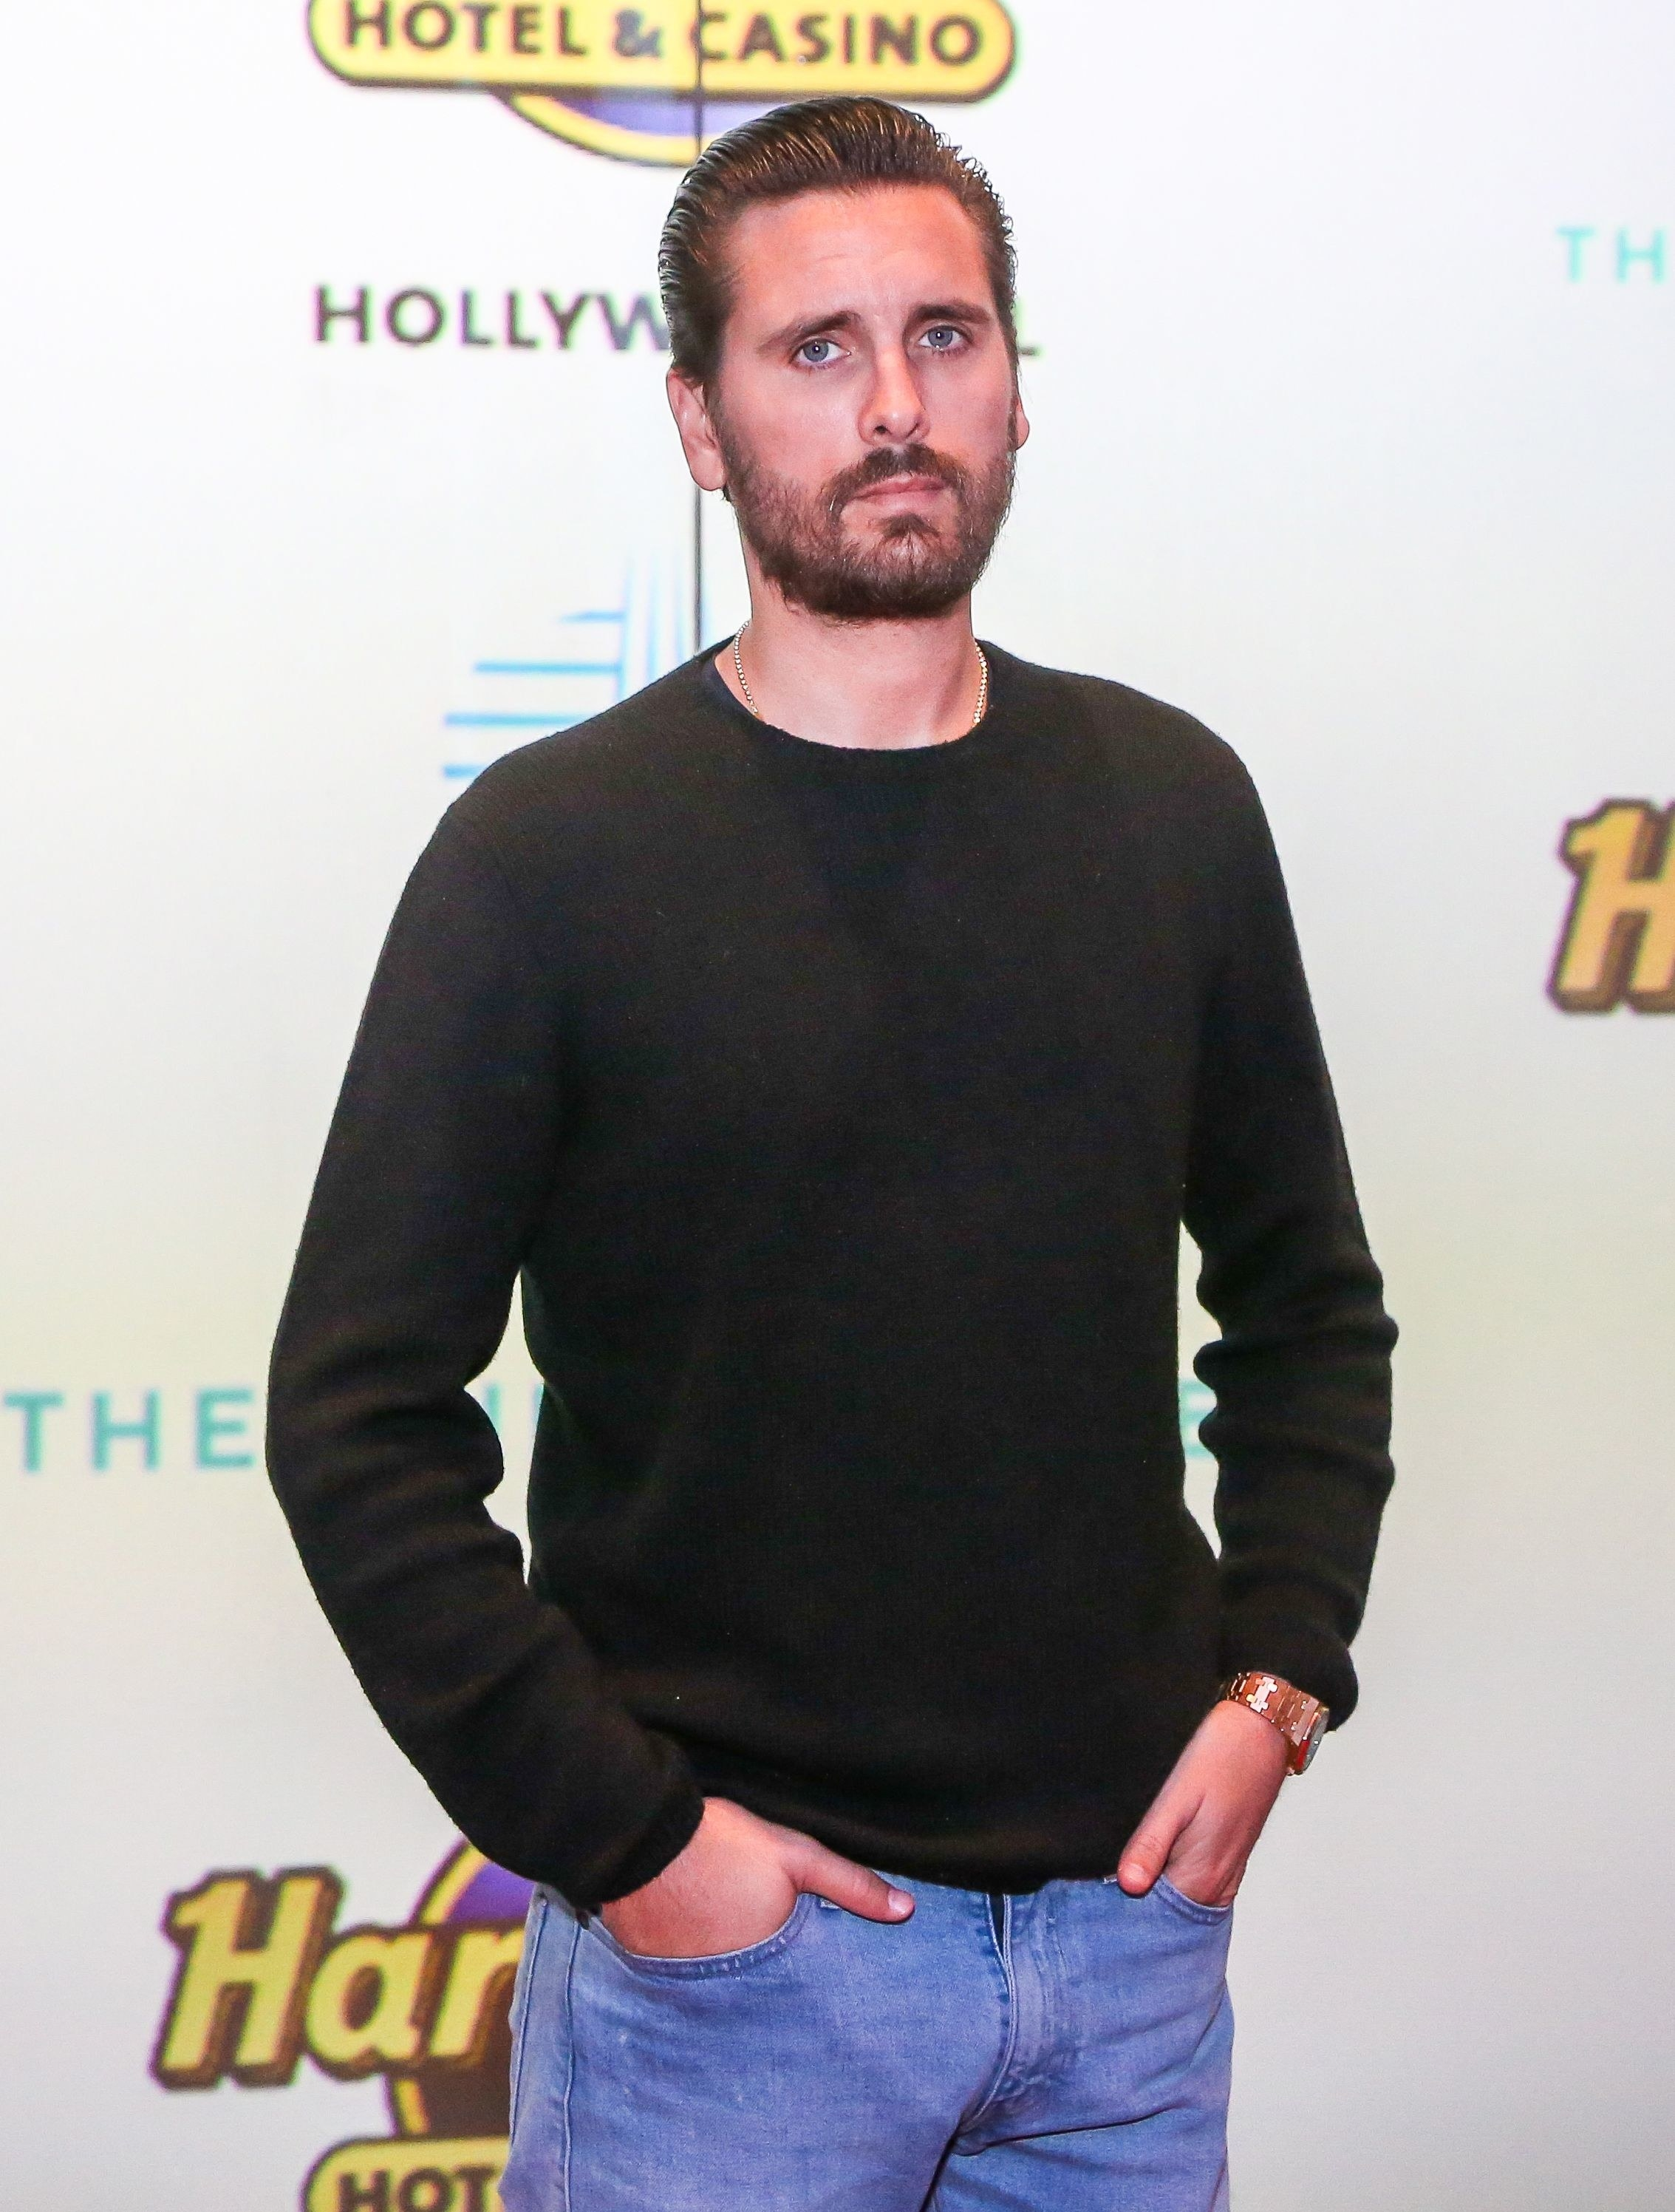 Scott Disick attends the Grand Opening of the Guitar Hotel expansion at Seminole Hard Rock Hotel & Casino Hollywood, in Hollywood, Florida, October 24, 2019